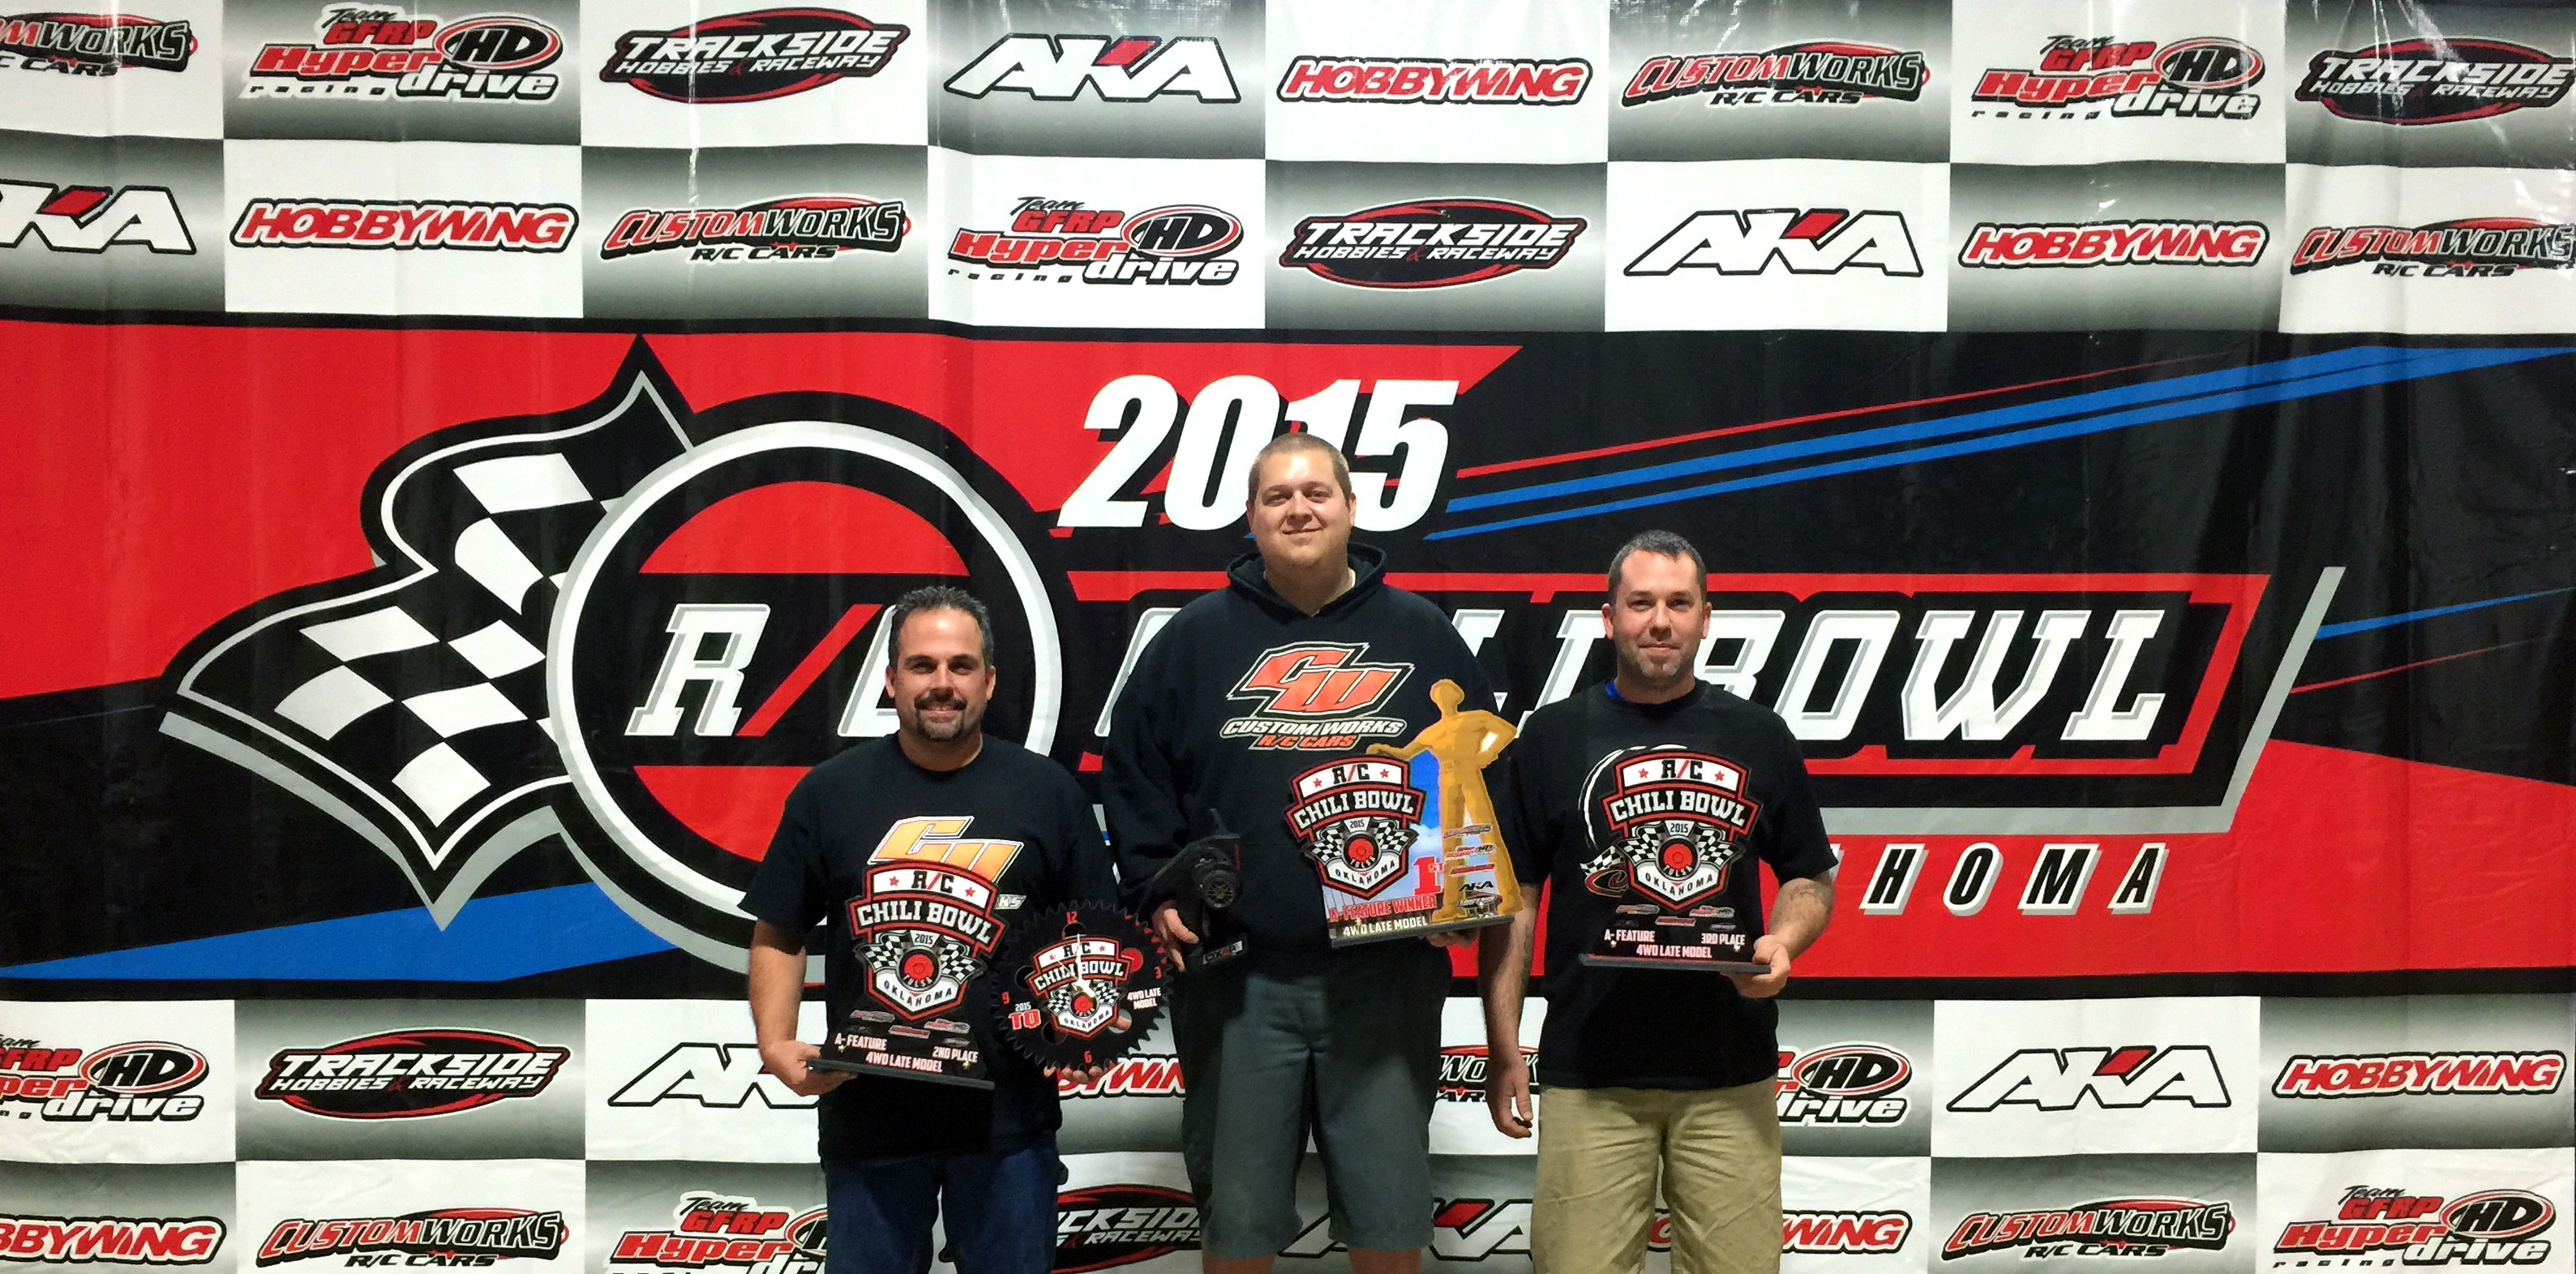 4WD LATE MODEL PODIUM